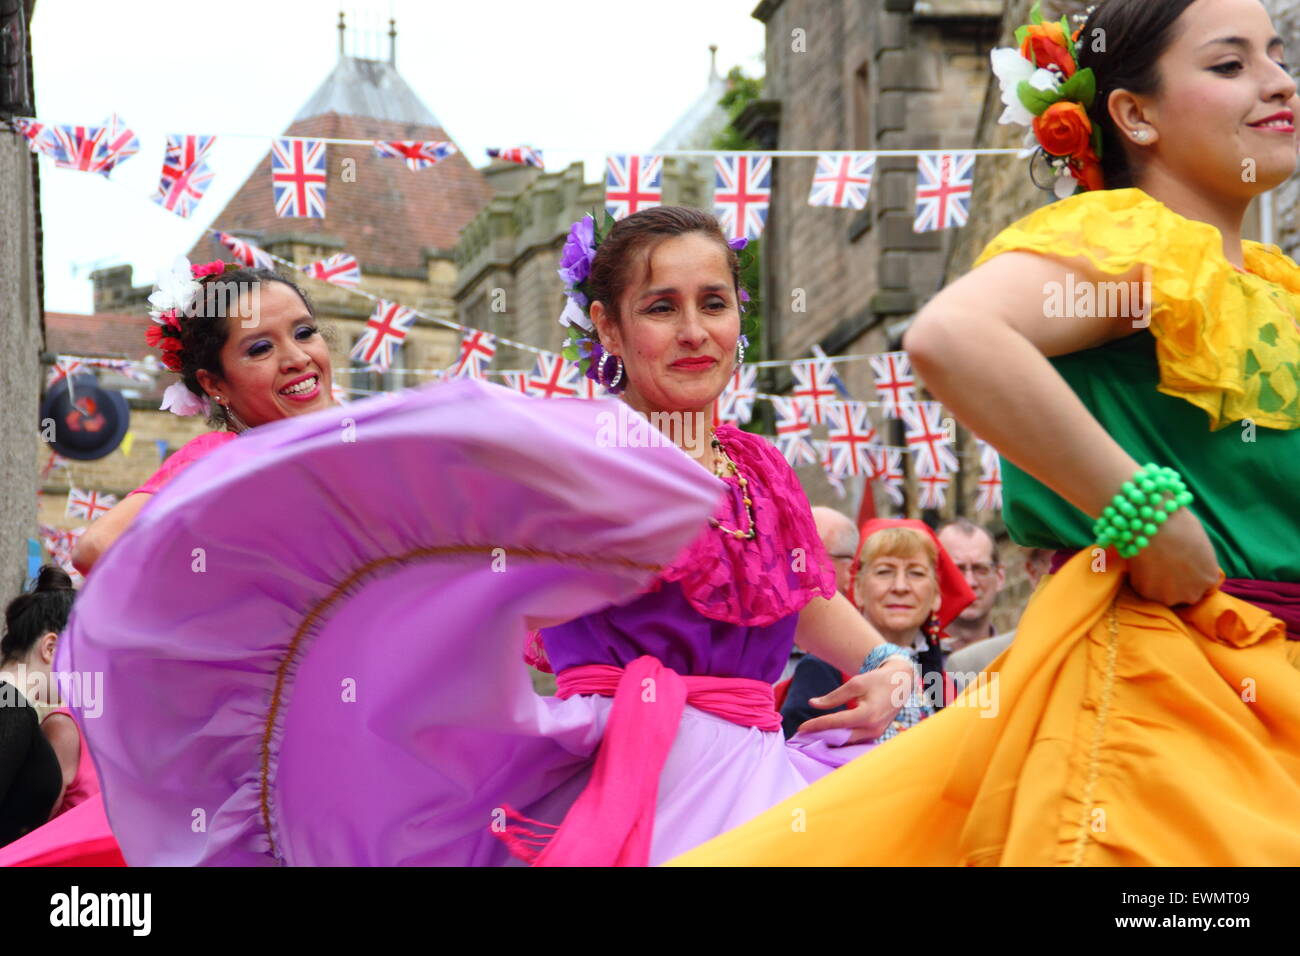 Members of Latin American dance group, Son de America perform at the Bakewell International Day of Dance, Bakewell, - Stock Image